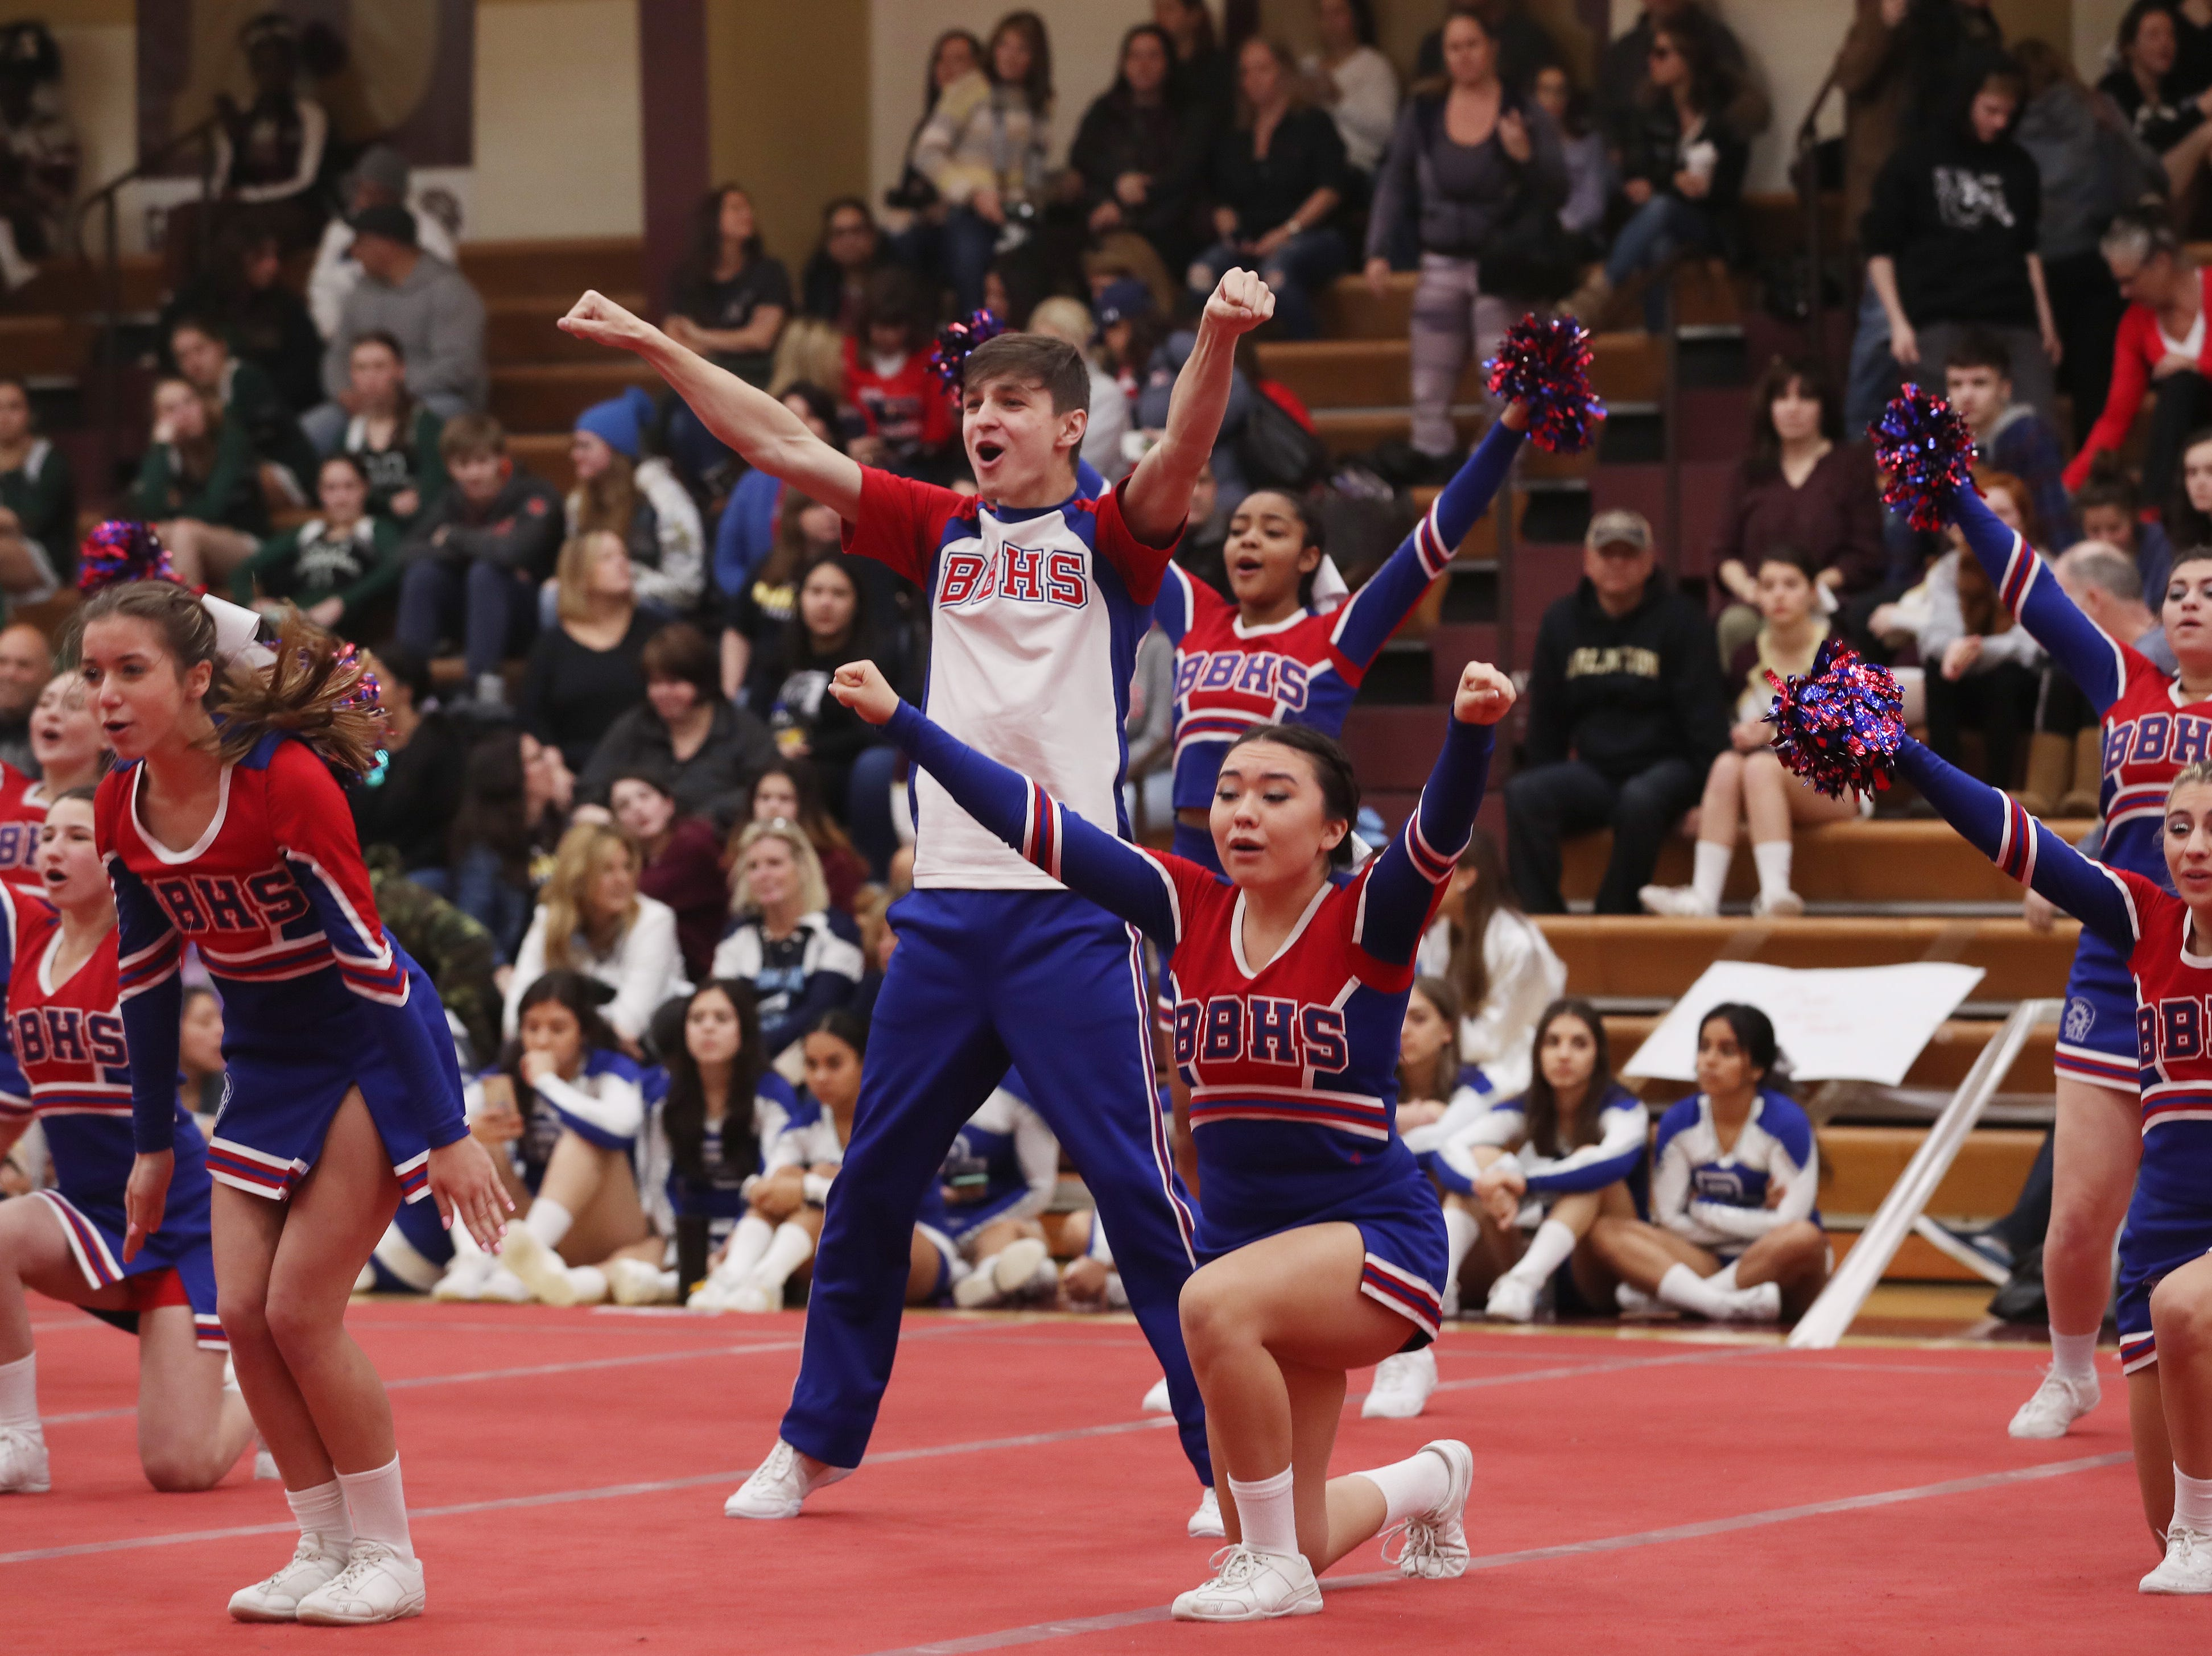 Blind Brook High School competes during the Section 1 cheerleading championships at Arlington High School in Freedom Plains Feb. 16, 2019.